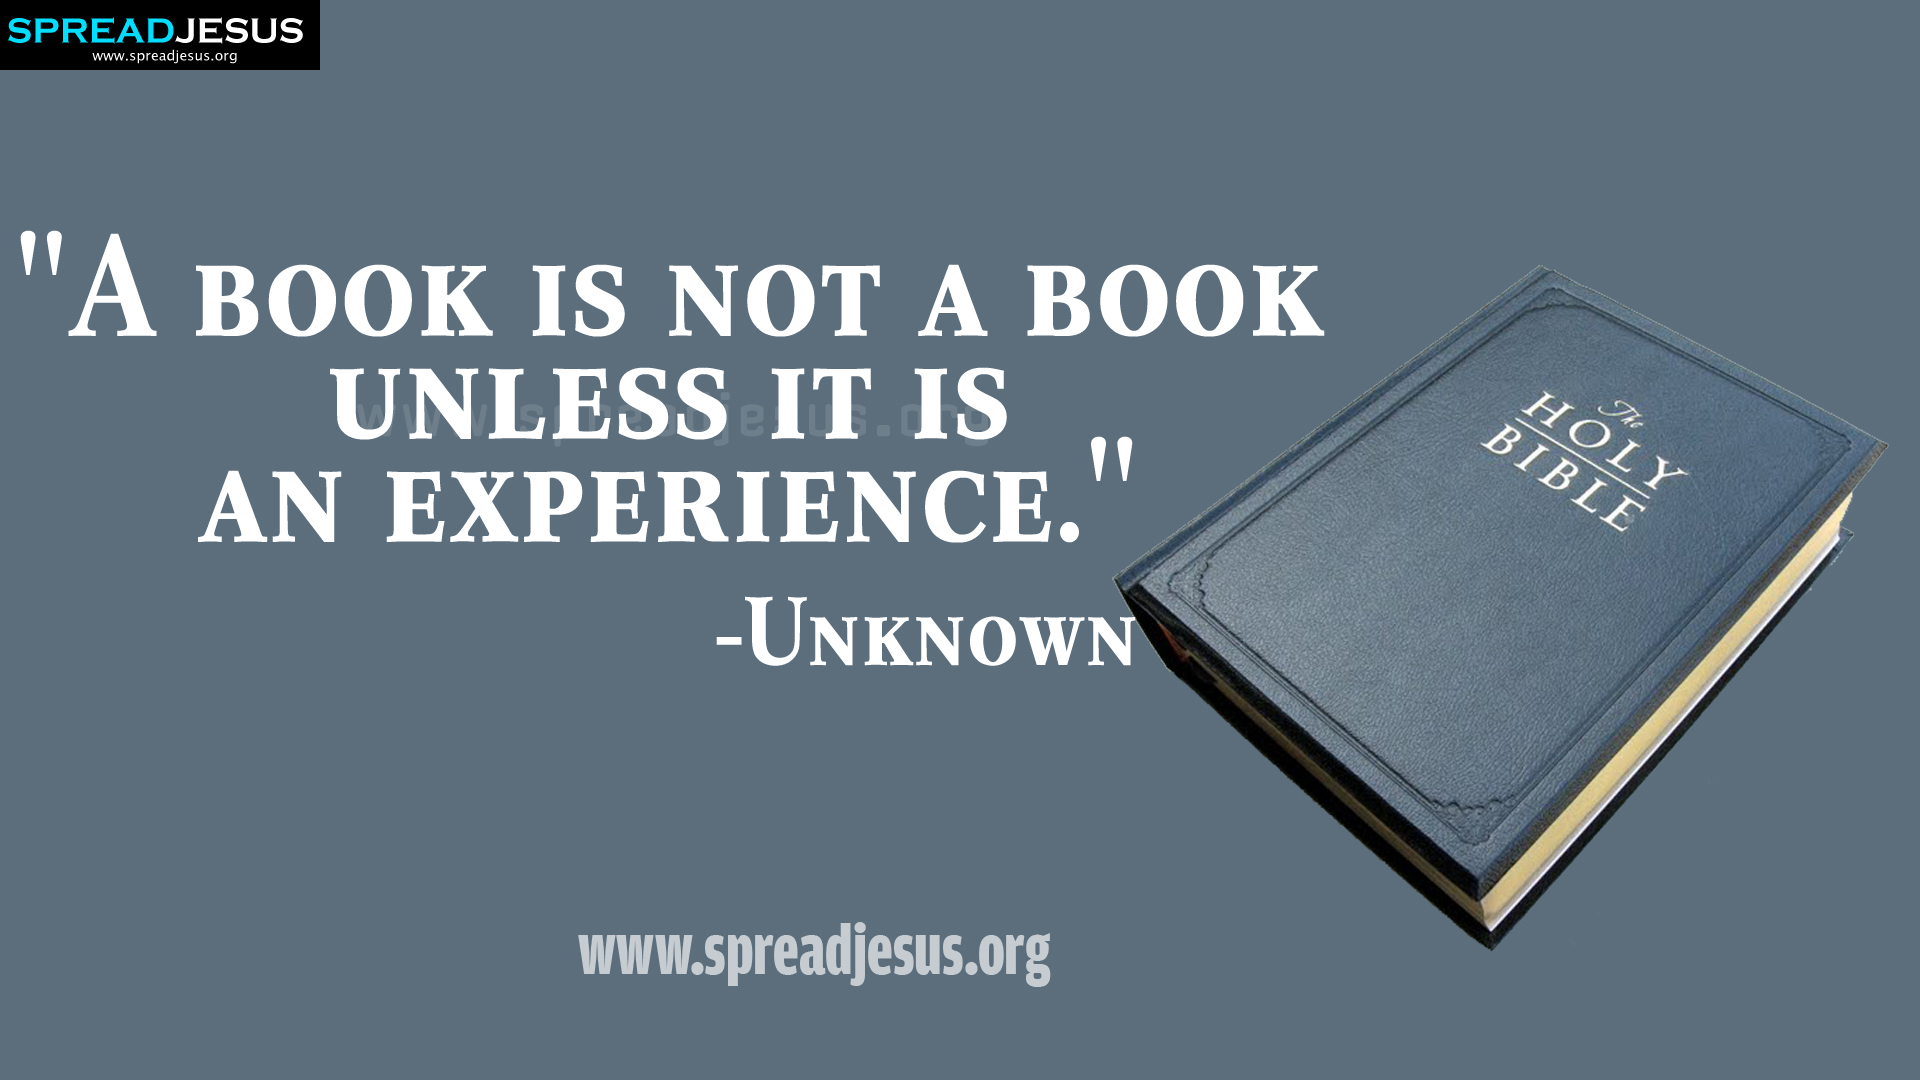 Hd wallpapers inspiring quotes on book reading hd wallpapers publicscrutiny Image collections